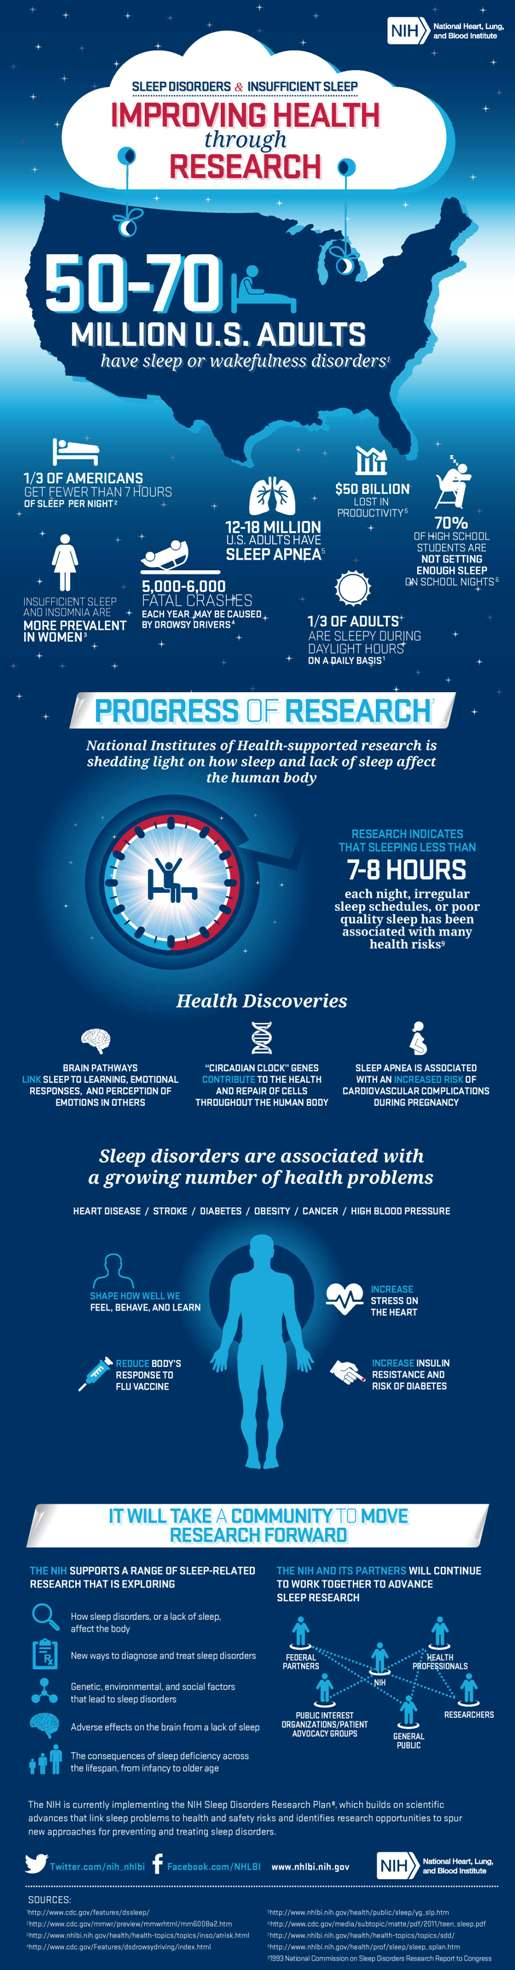 educational: an infographic about the health risks of poor sleep and insomnia